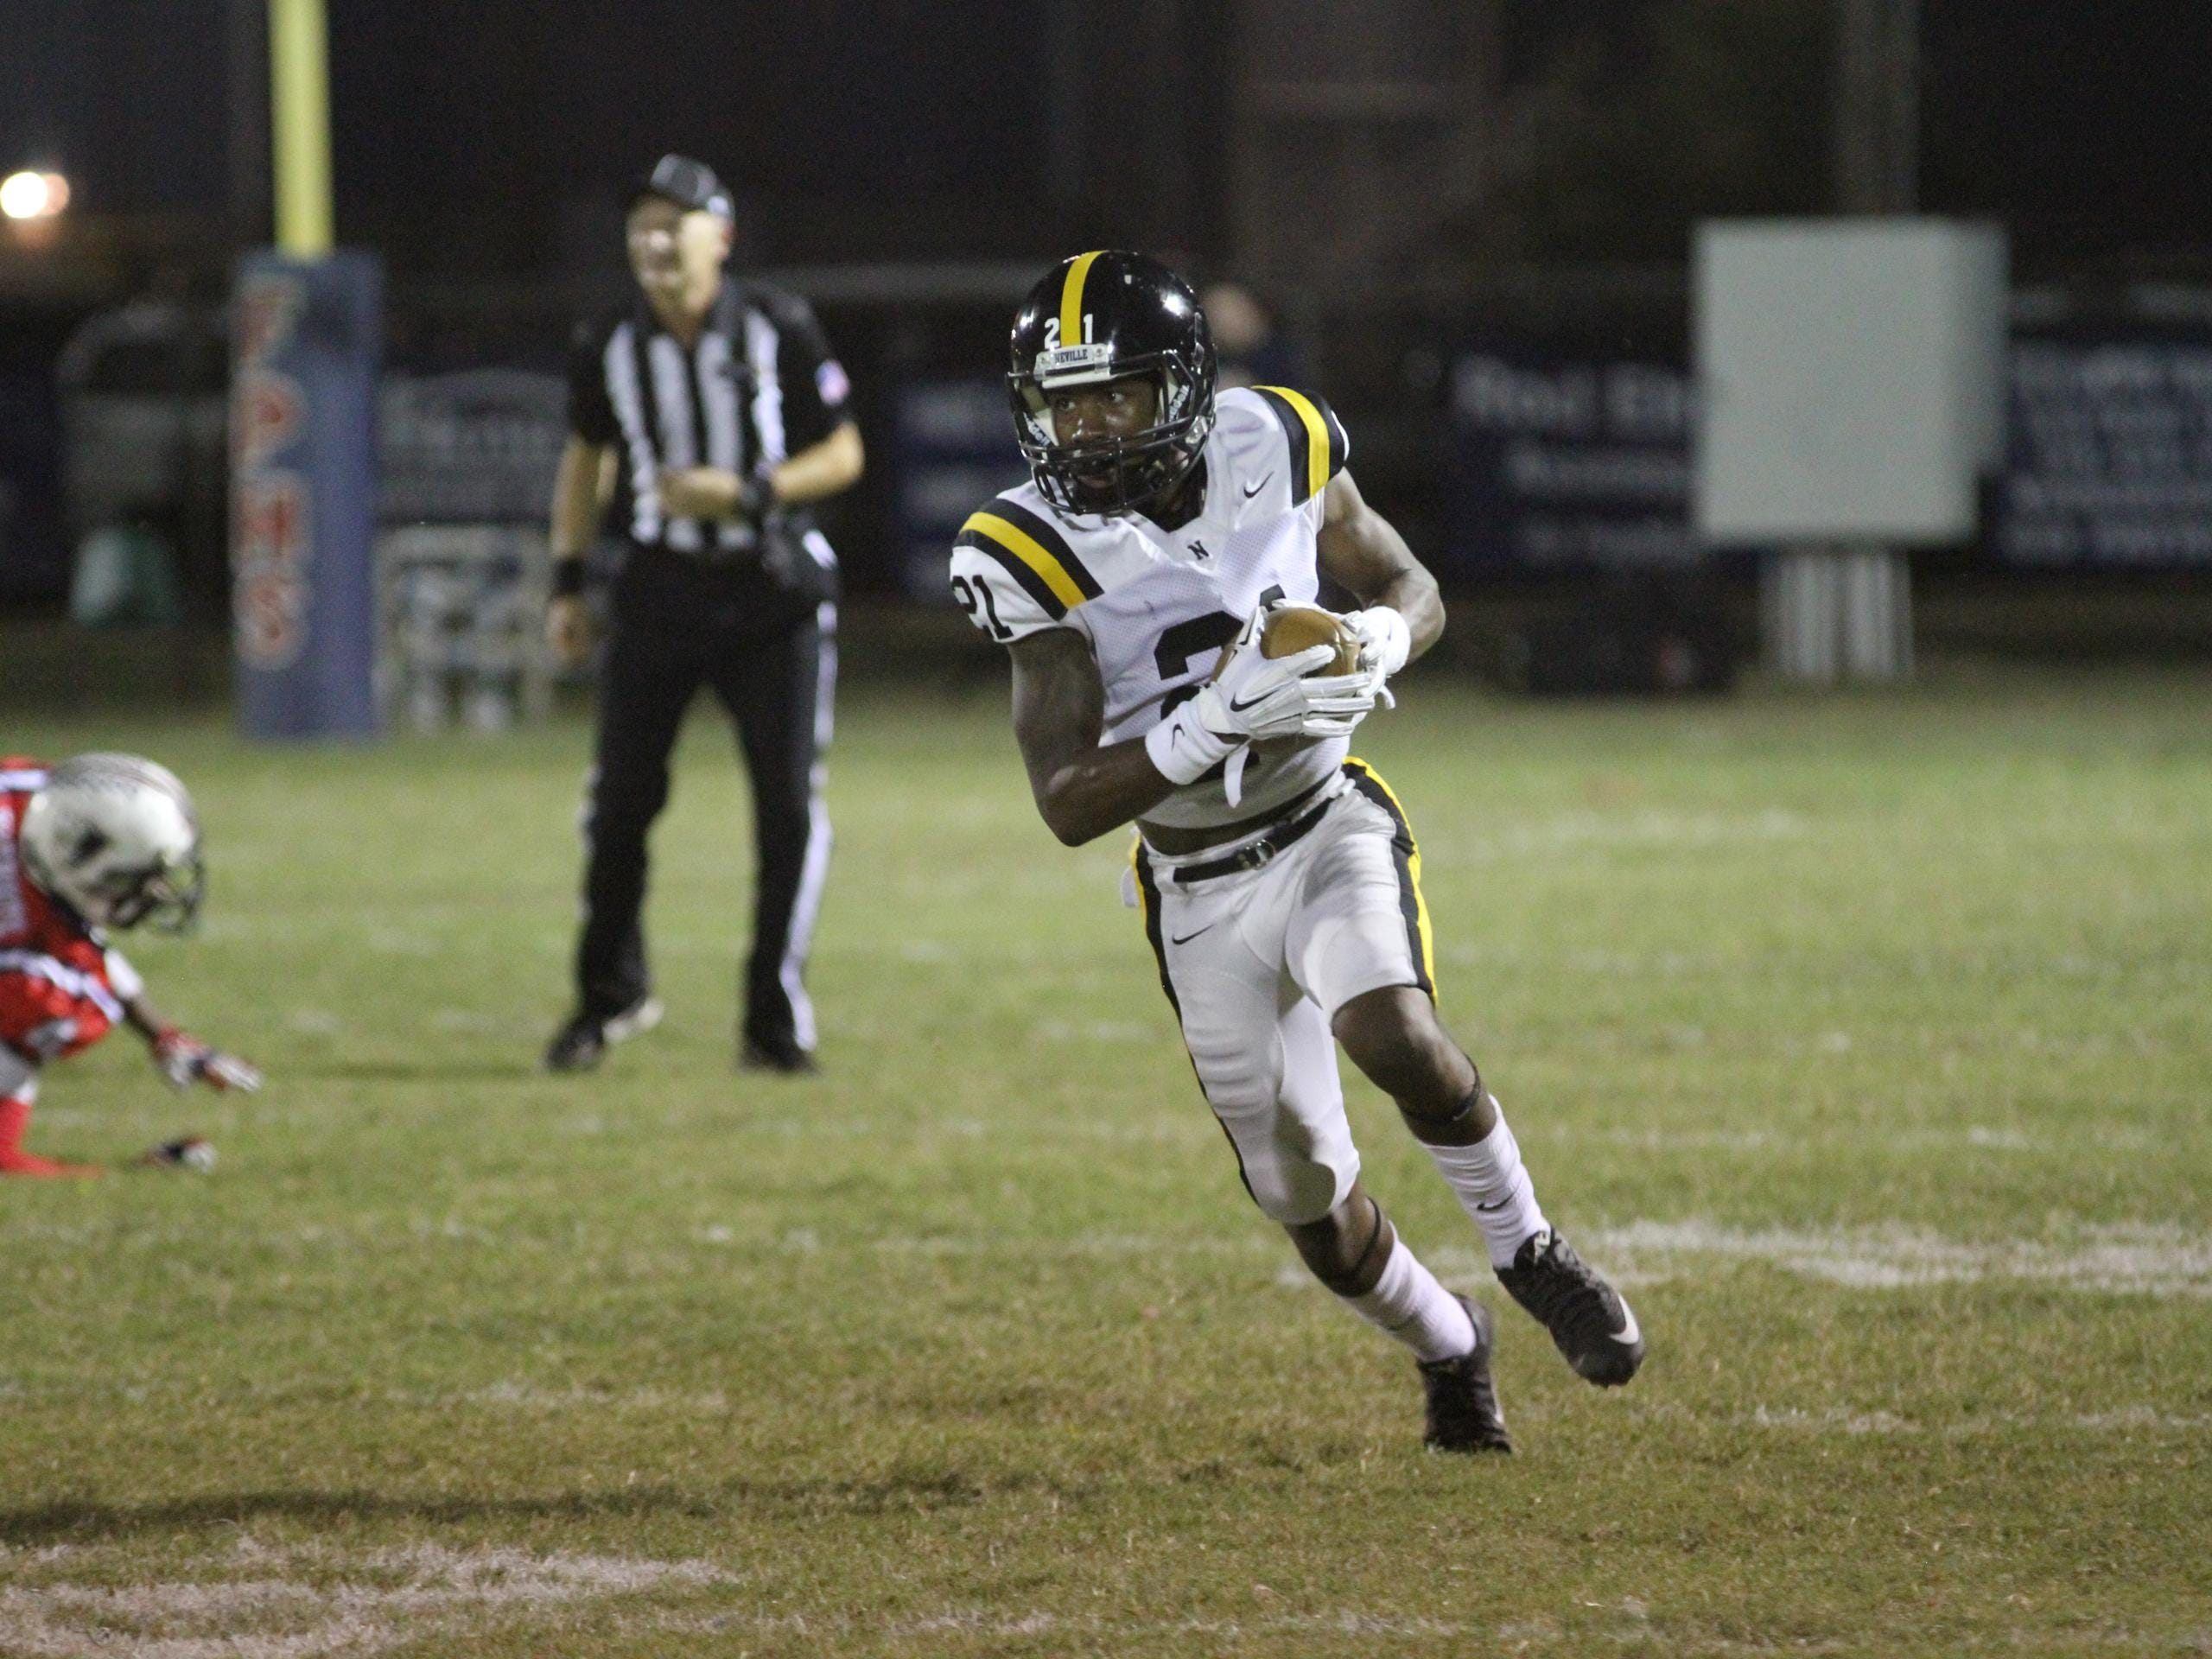 Neville's Corey Straughter (21) gets some yards for the Tigers in first half action against the Franklin Parish Patriots Thursday night in Winnsboro.